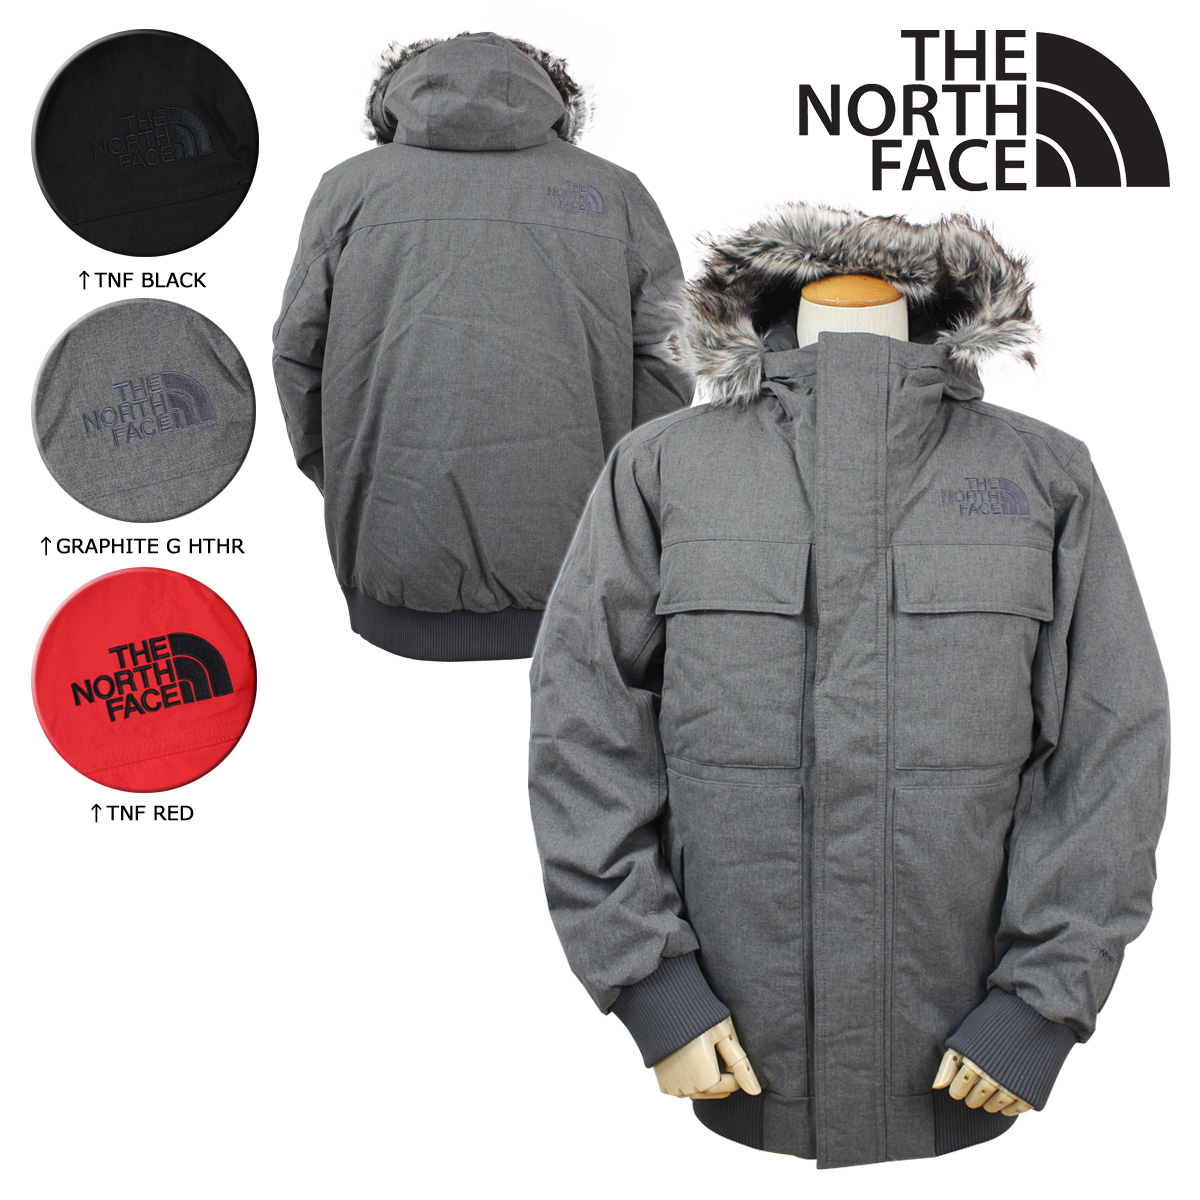 Sugar Online Shop  North face THE NORTH FACE mens Jacket Mountain parka  CYK7 3 color MEN s GOTHAM JACKET 2  11   6 new in stock   a5f343733